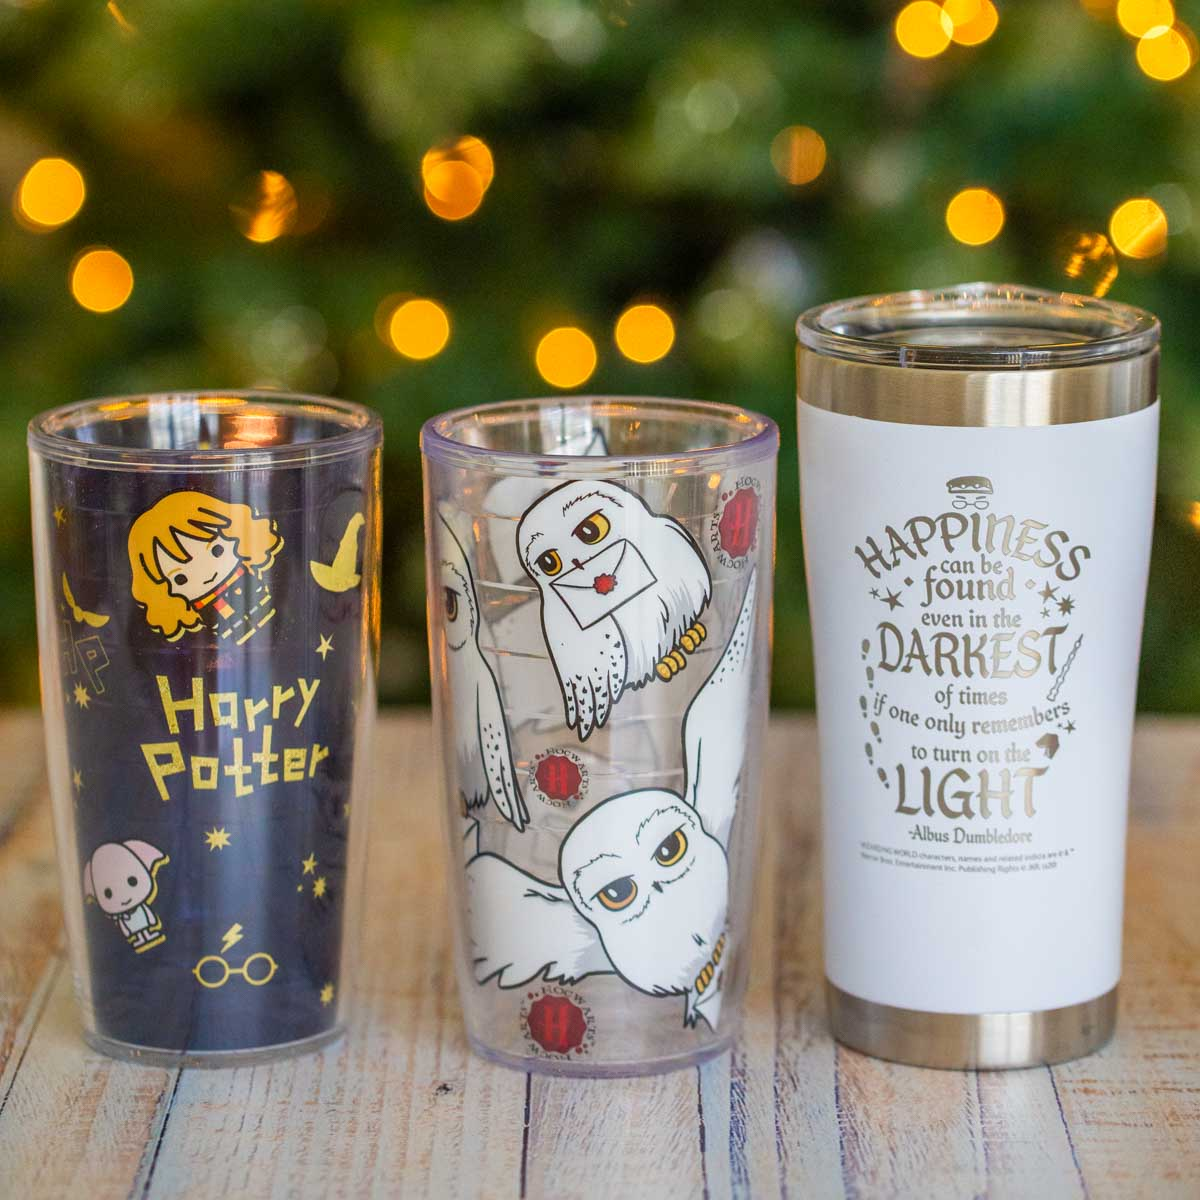 Three Harry Potter tumblers in front of a lit Christmas tree.